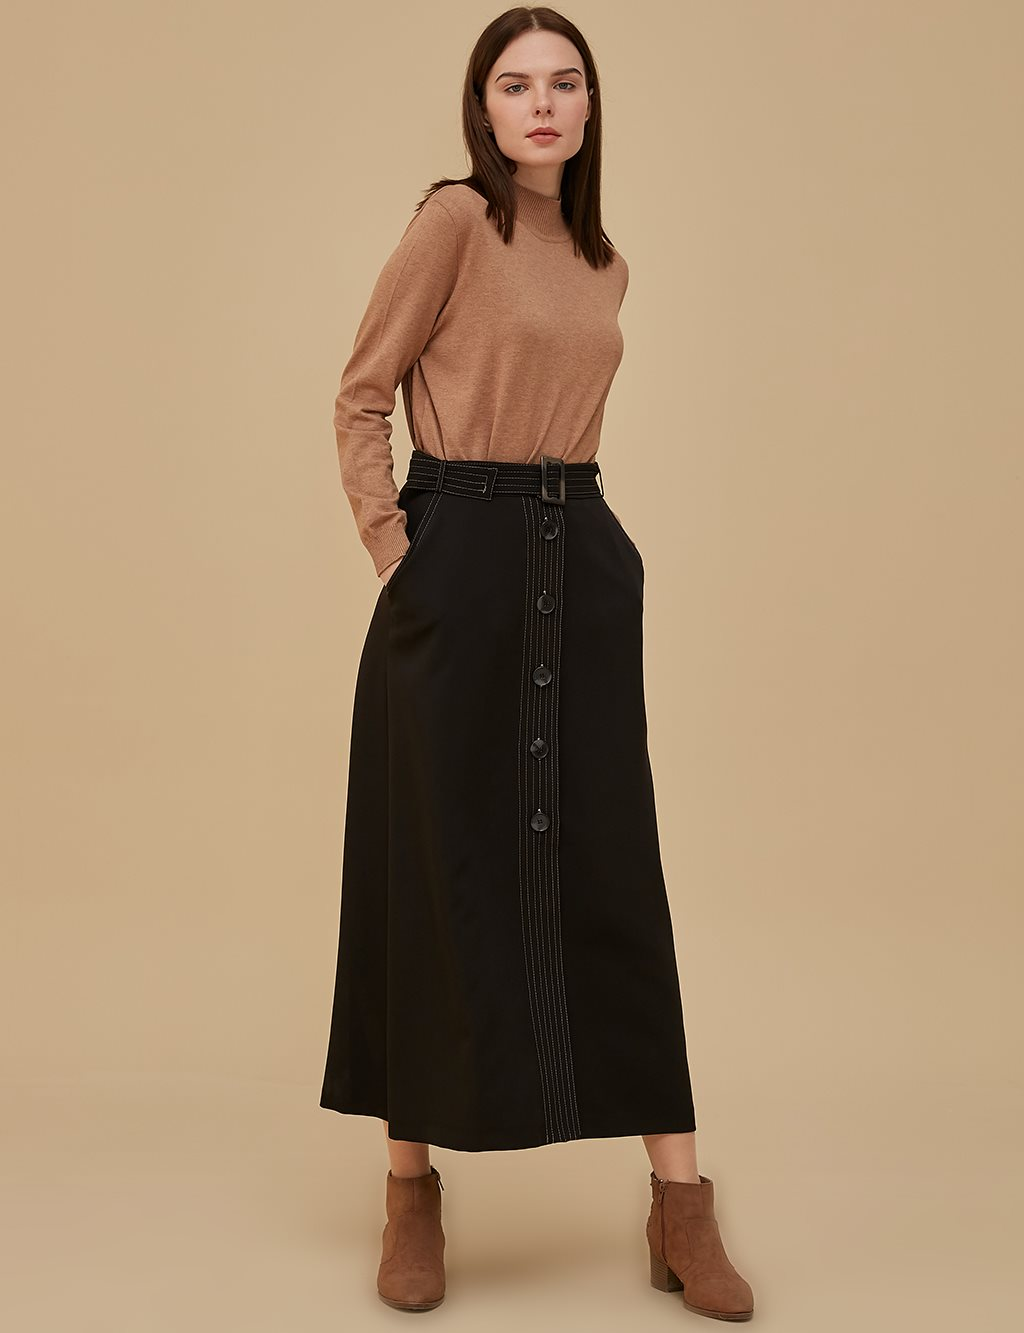 Skirt With Button Details A9 12060 Black